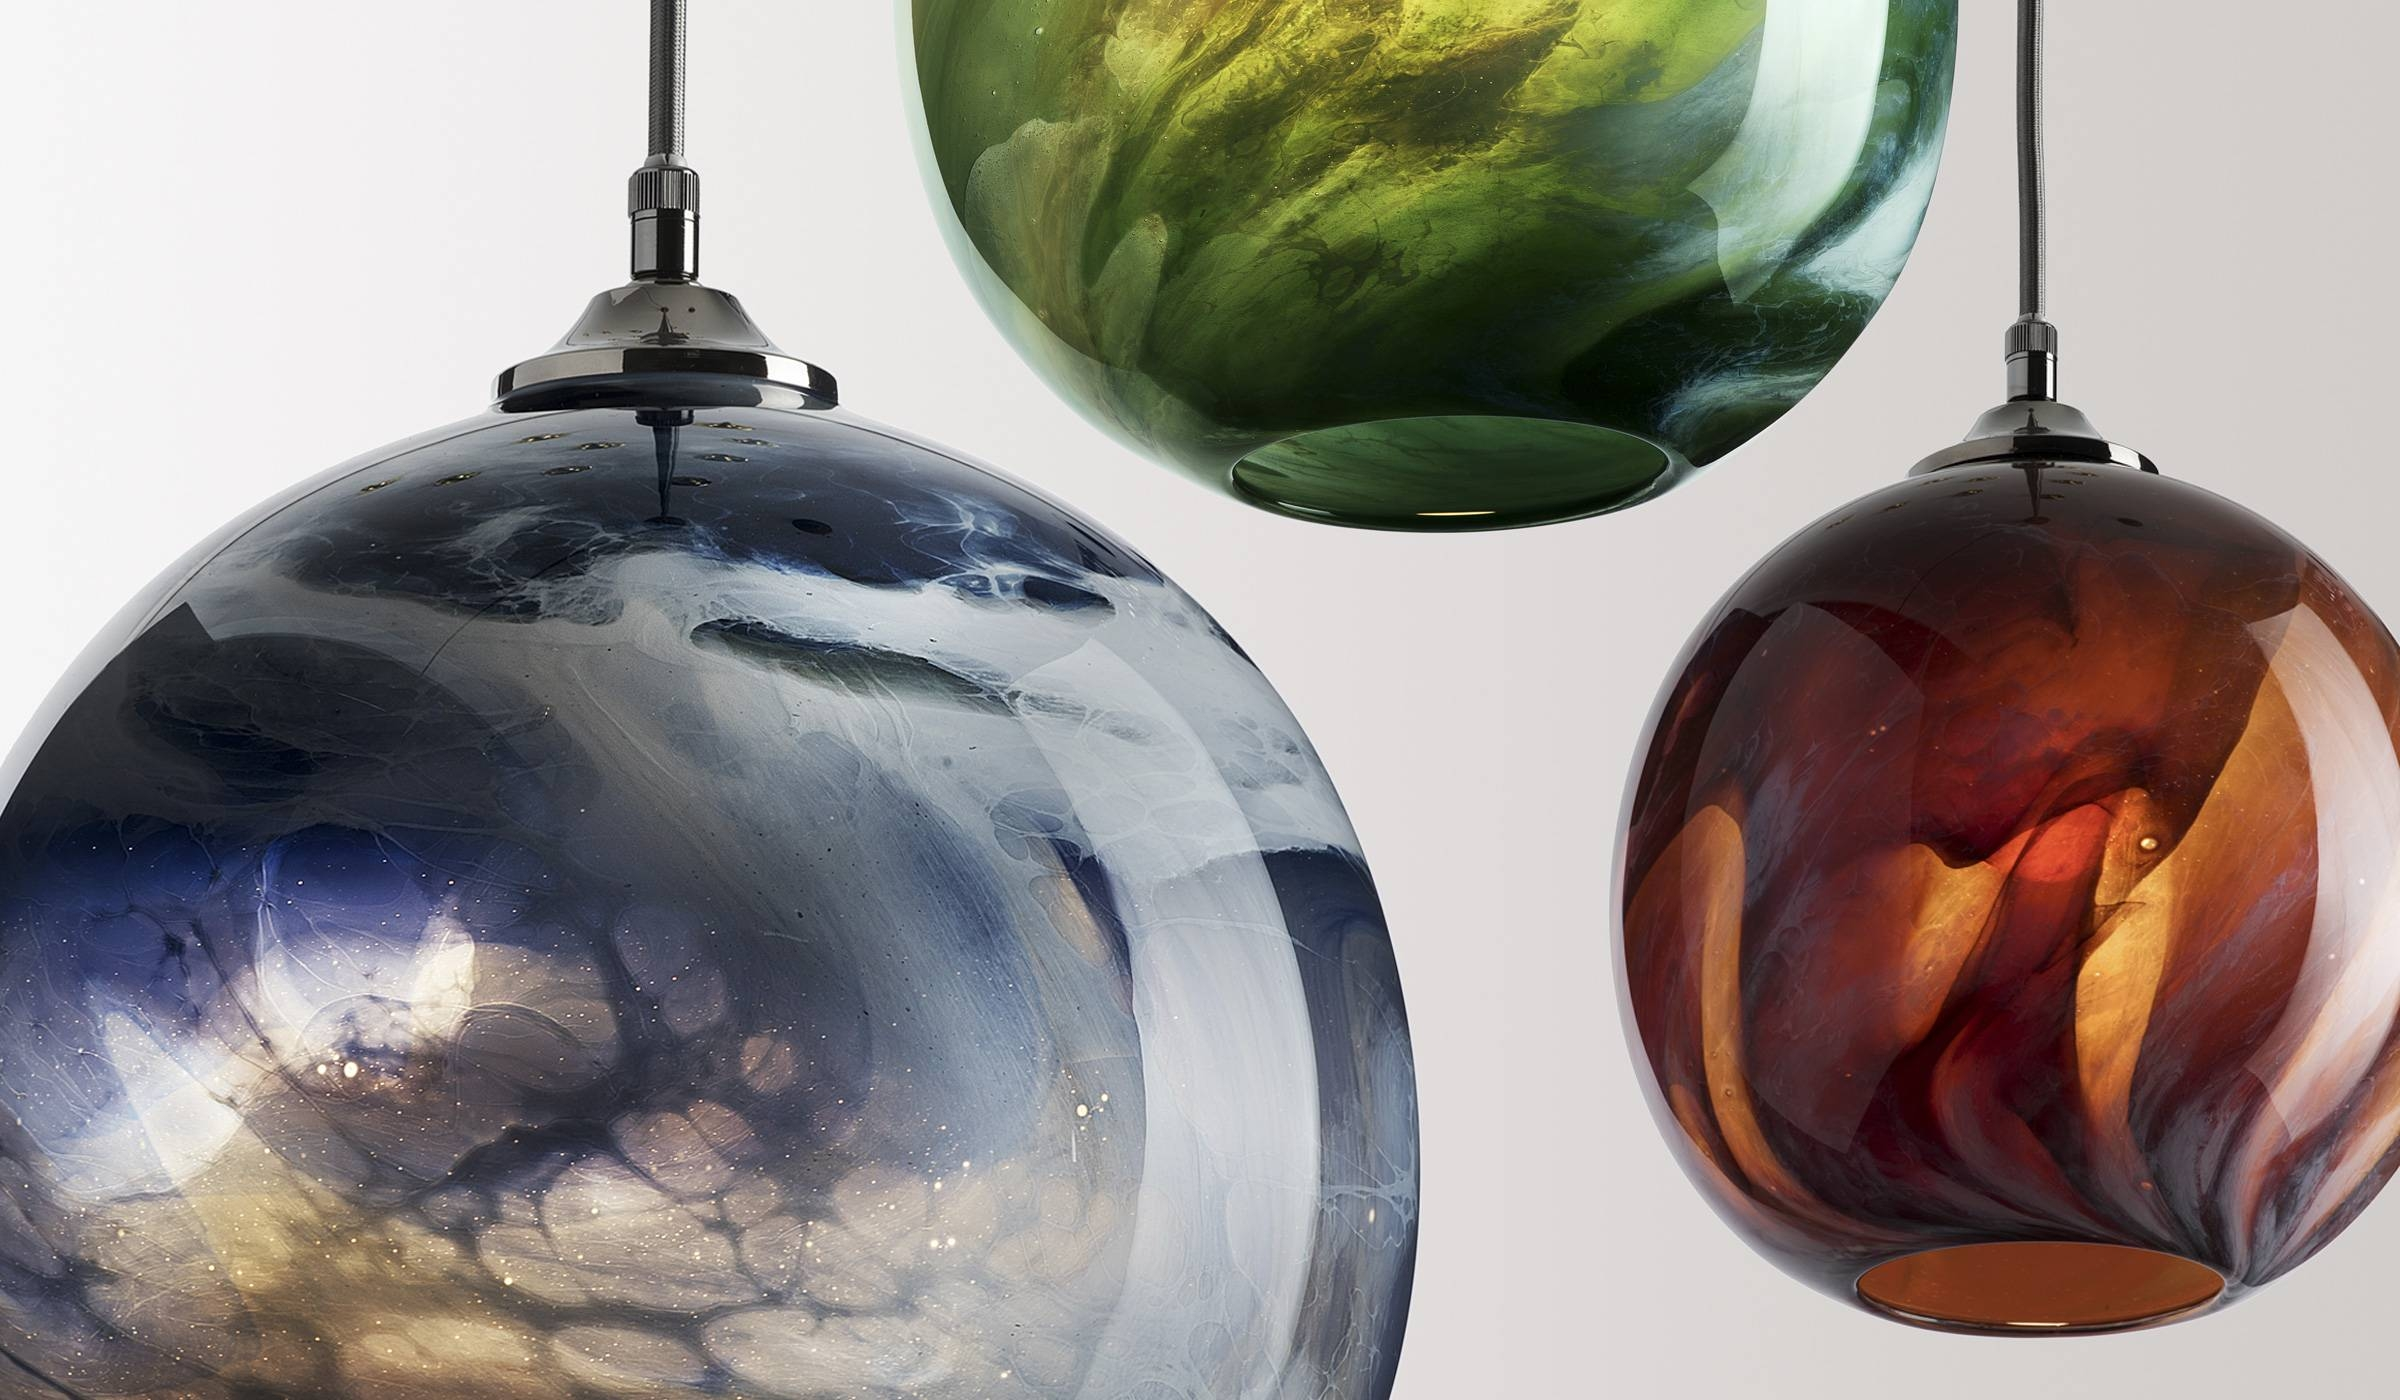 Glass Lighting - Rothschild & Bickers intended for Coloured Glass Pendants (Image 9 of 15)